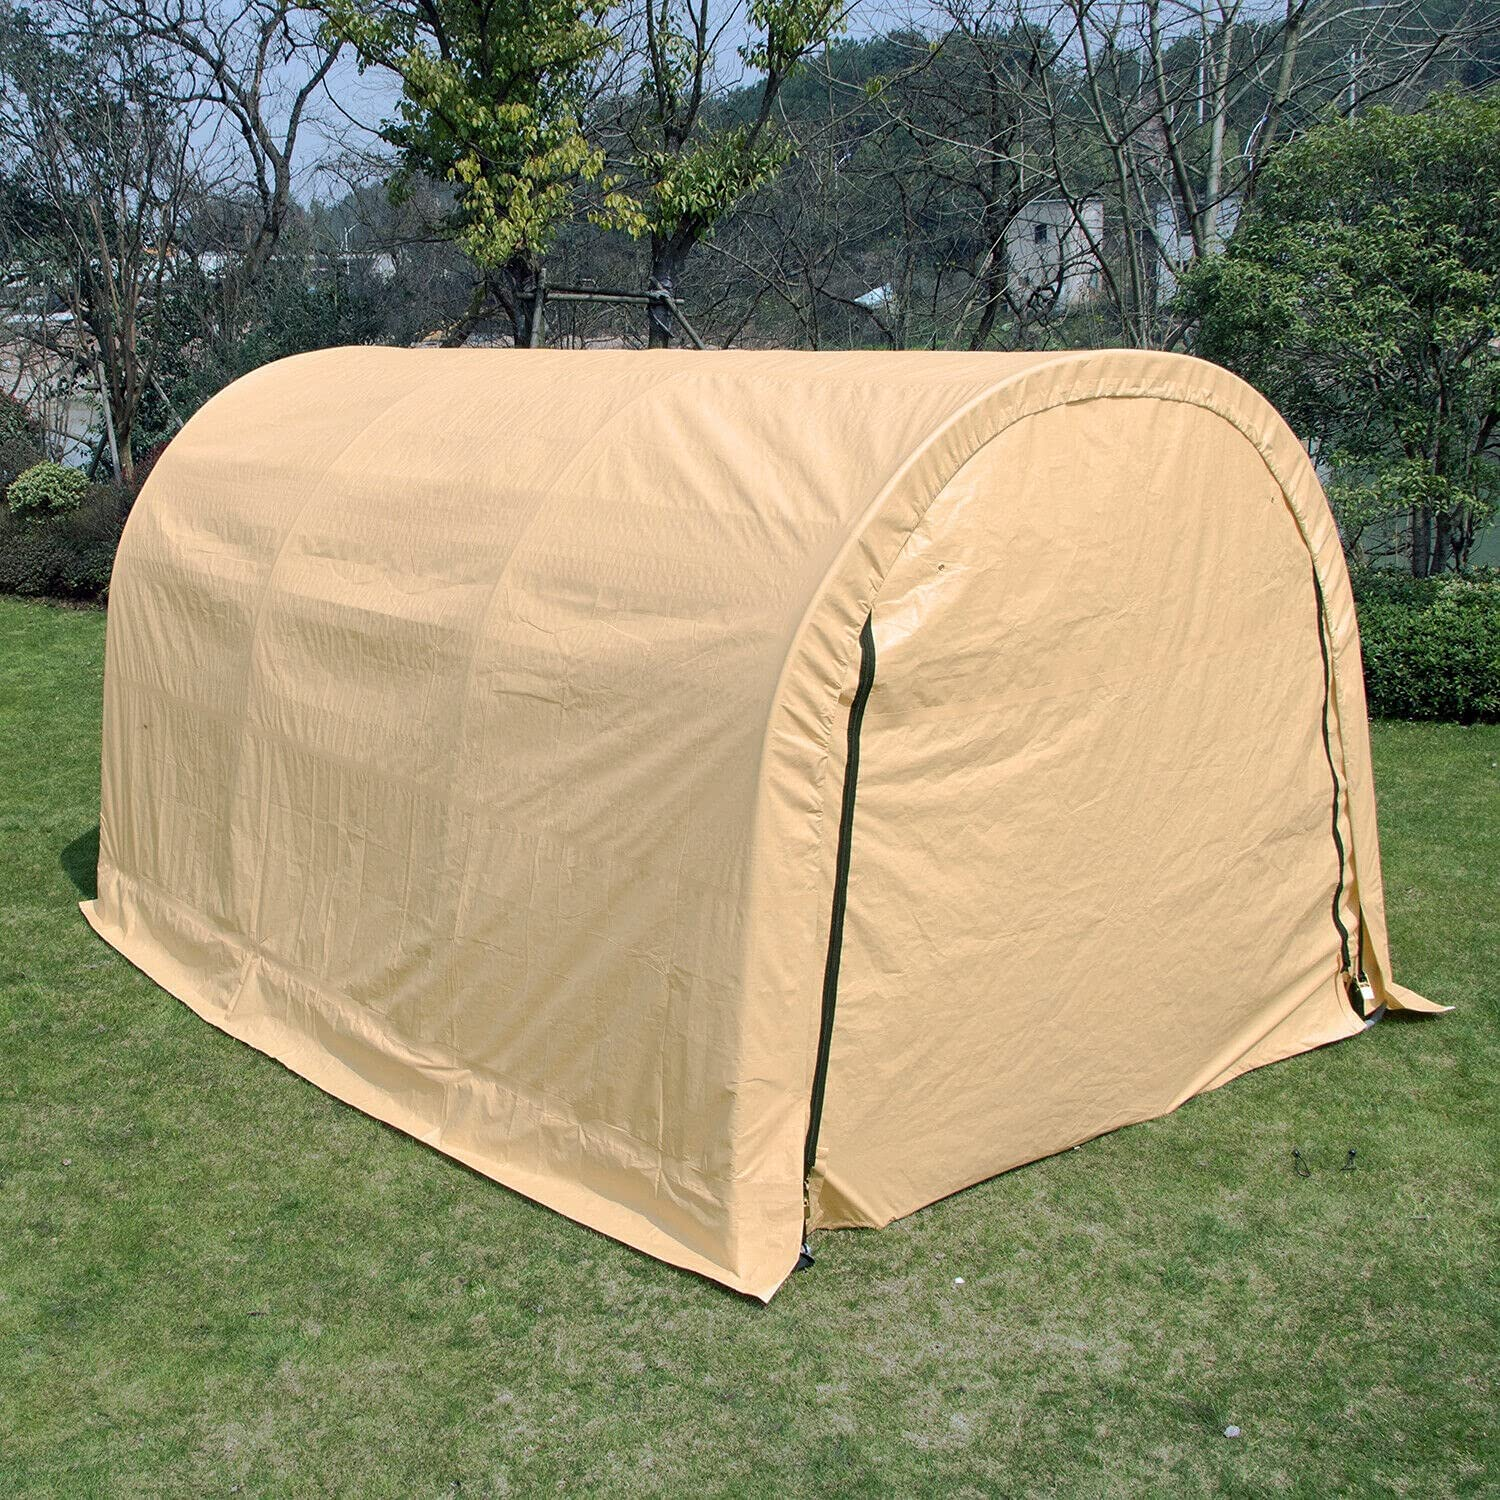 HUIJK specialty shop Storage Sheds 10x15ft Wood Haystack Outdoor Cover 2021 autumn and winter new